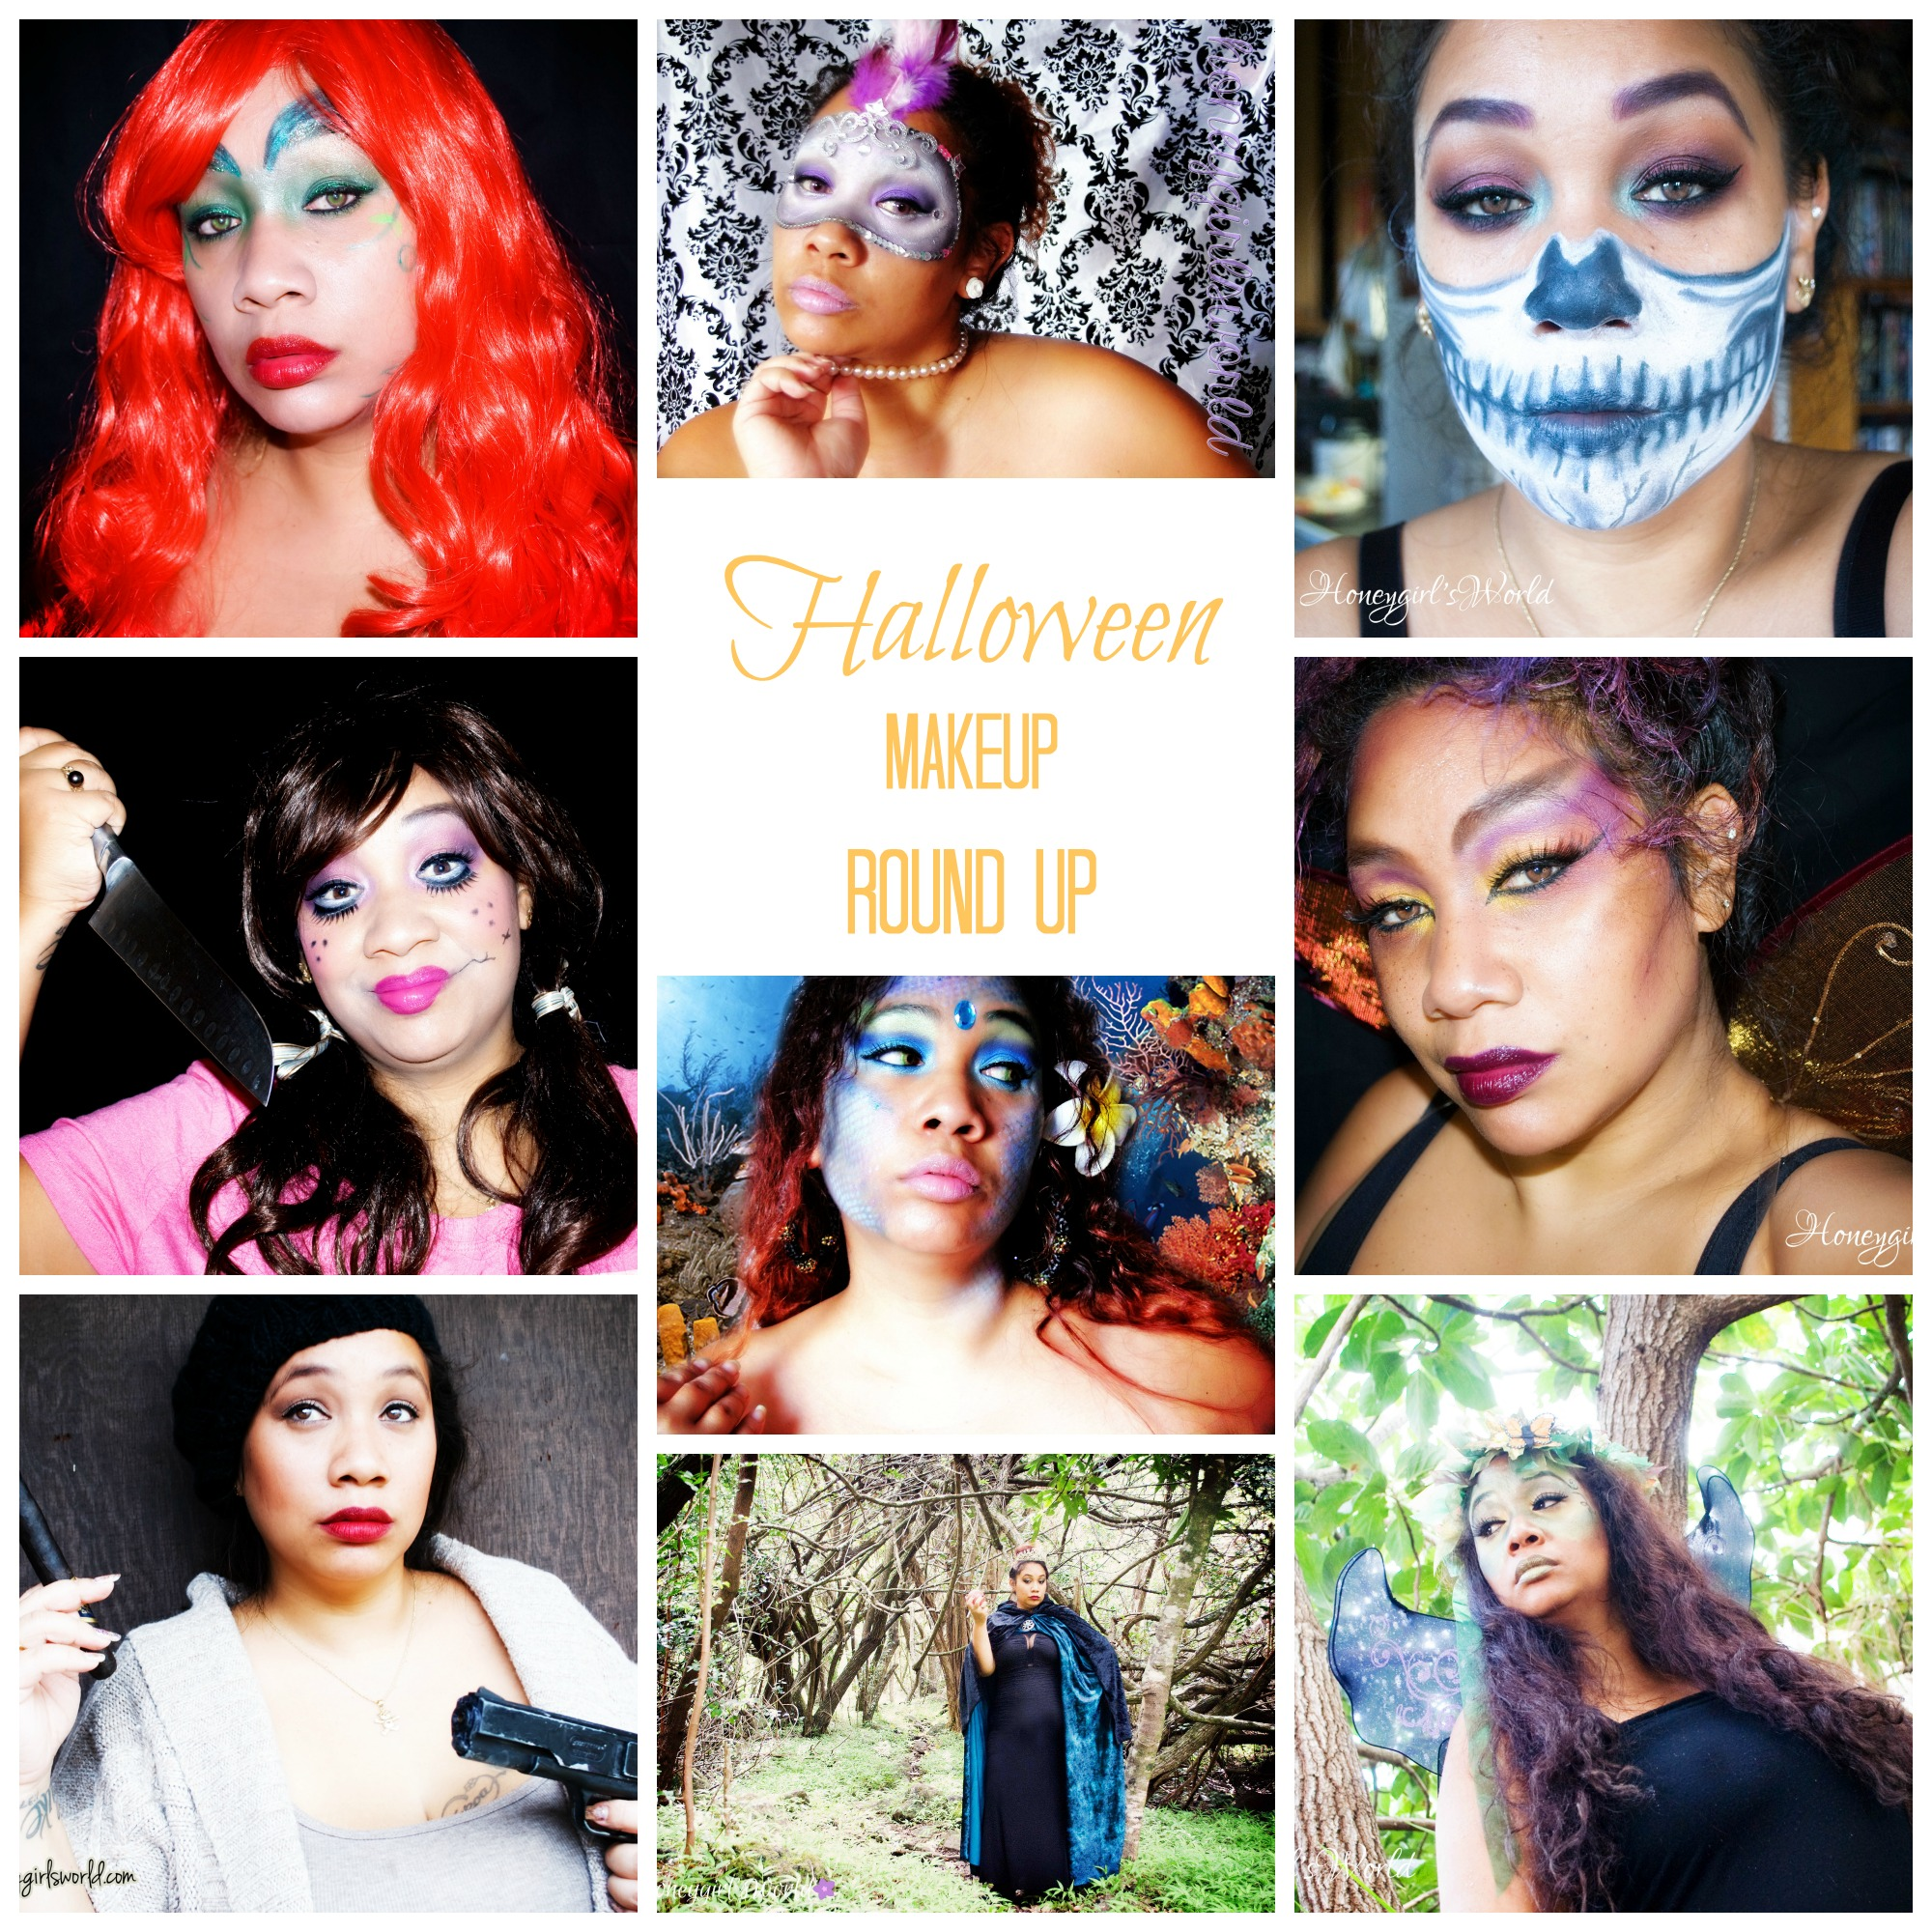 Halloween Makeup – A Round Up of Past Looks I've Created